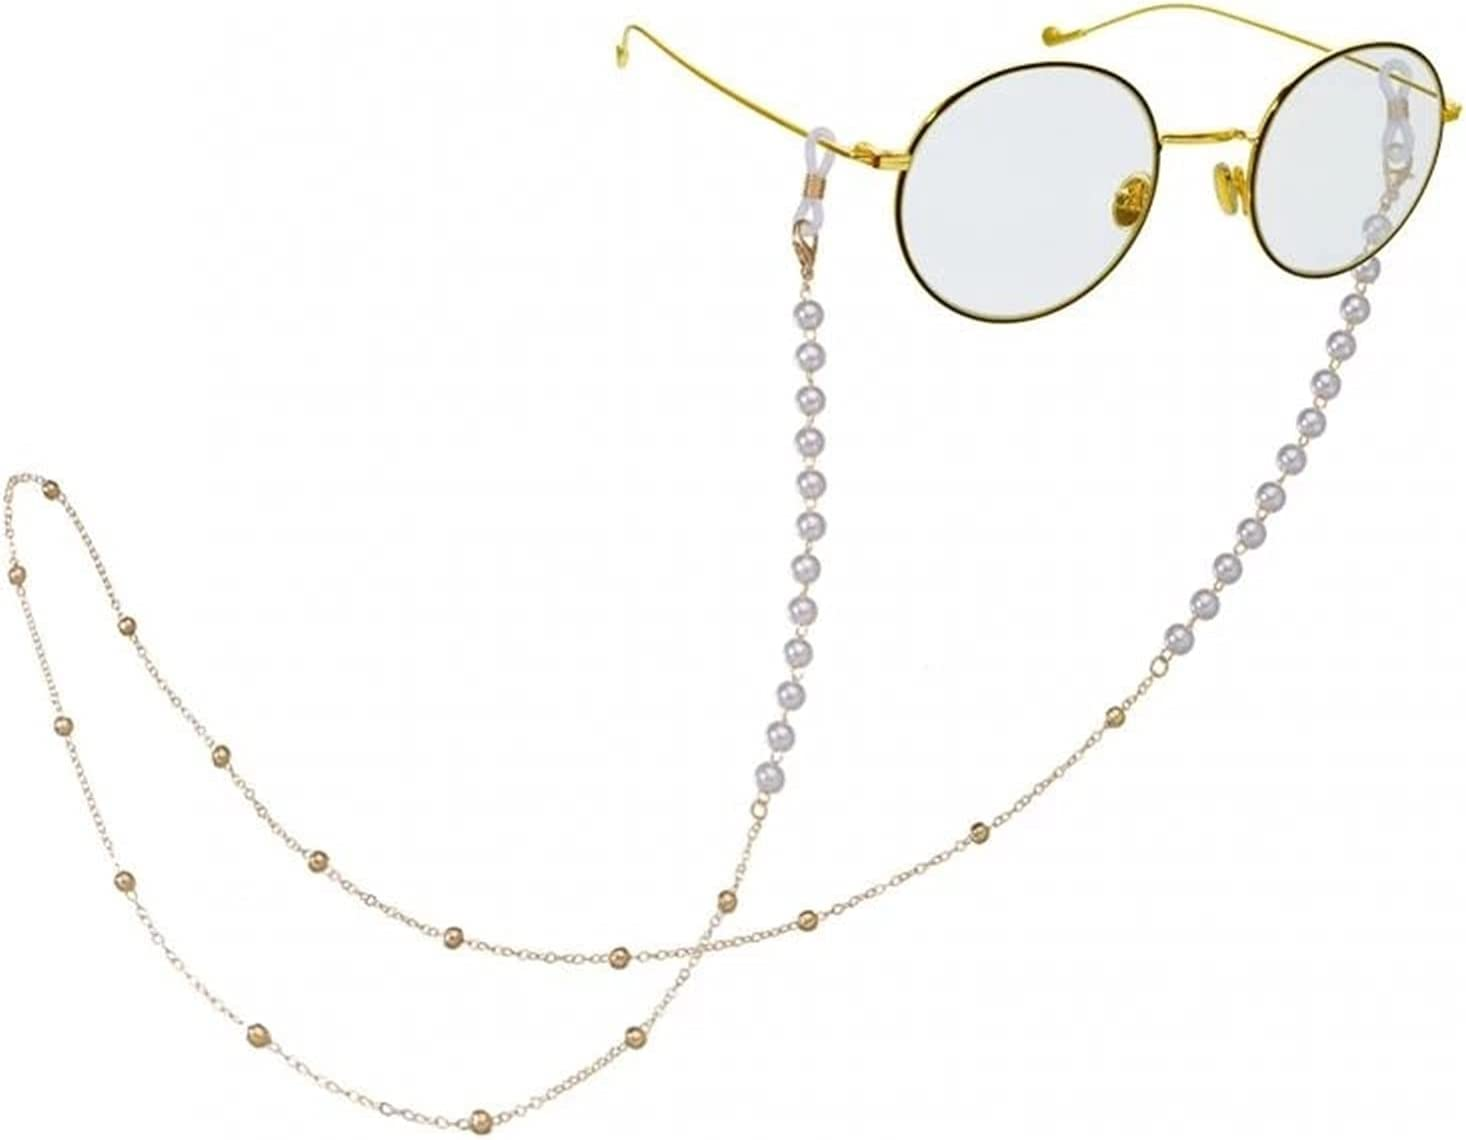 Sunglasses Chain Lanyard Necklace Holder Fashion Pearl Glasses Chain Women Men Eyeglass Retainer Cord (Color : Gold)